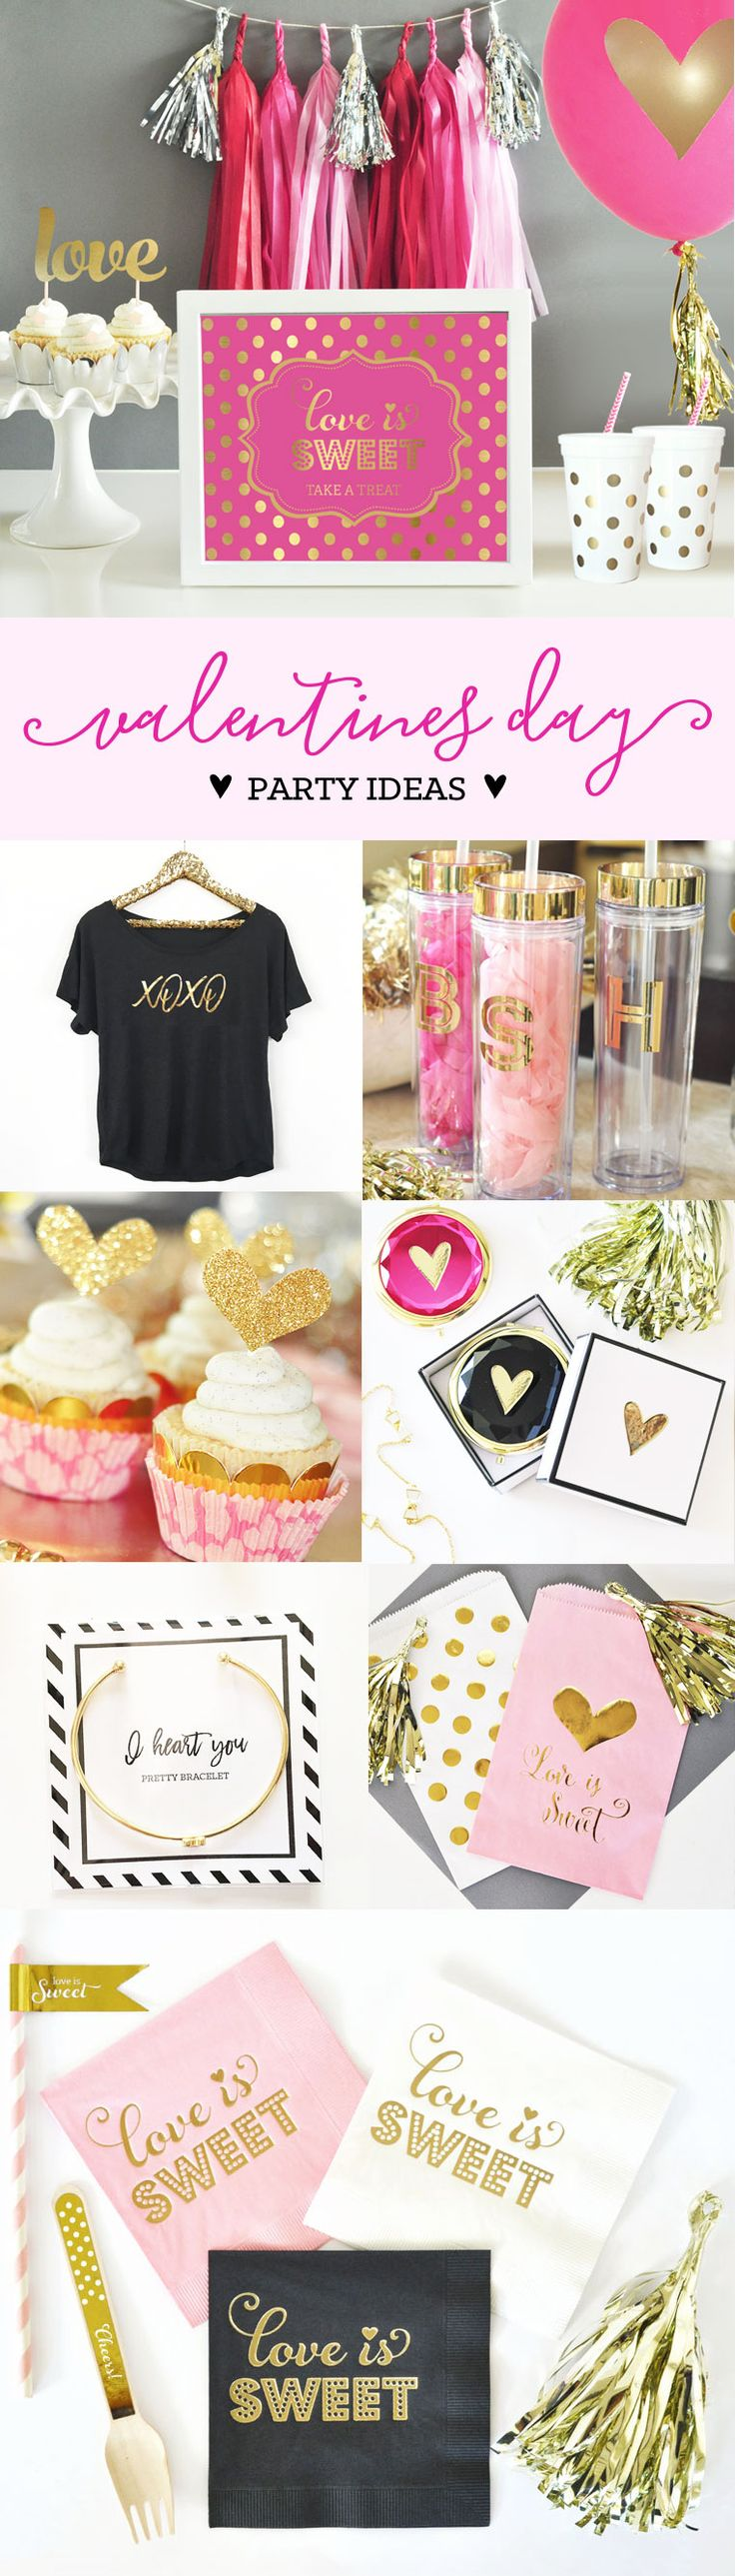 Valentines Day Party Ideas | Valentines Day Decor